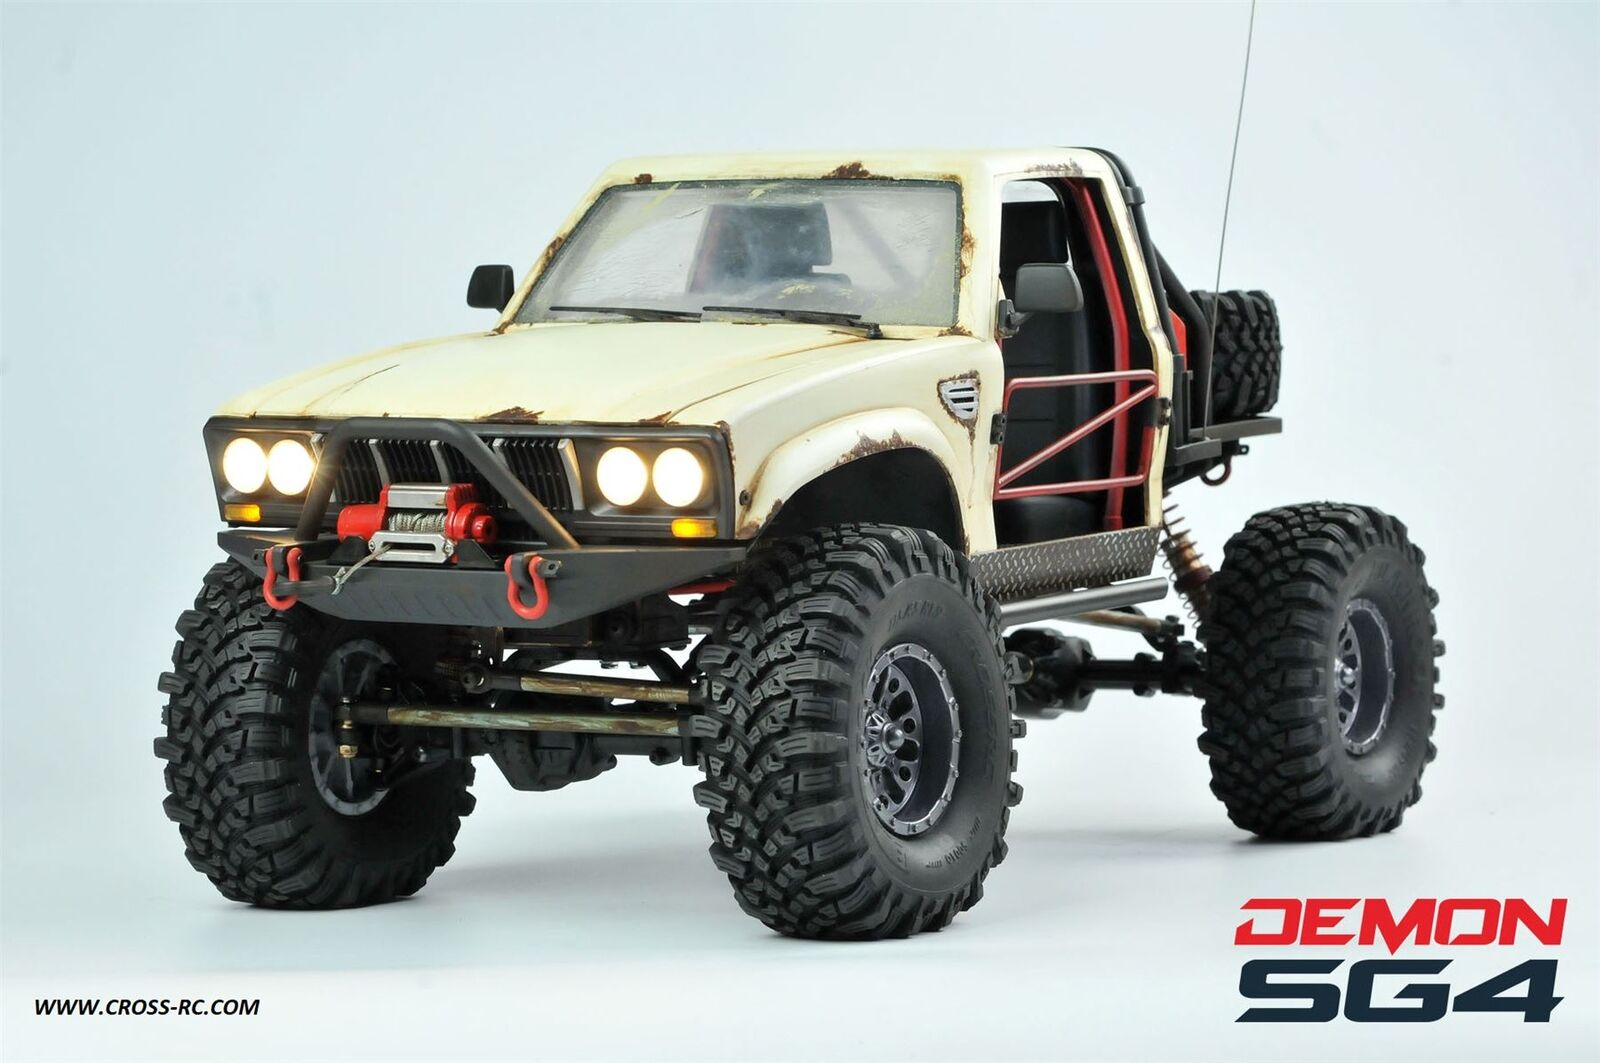 Cross RC - SG4C Demon 4x4 Crawler Kit, w/ Hard Body and CNC Gears, 1/10 Scale